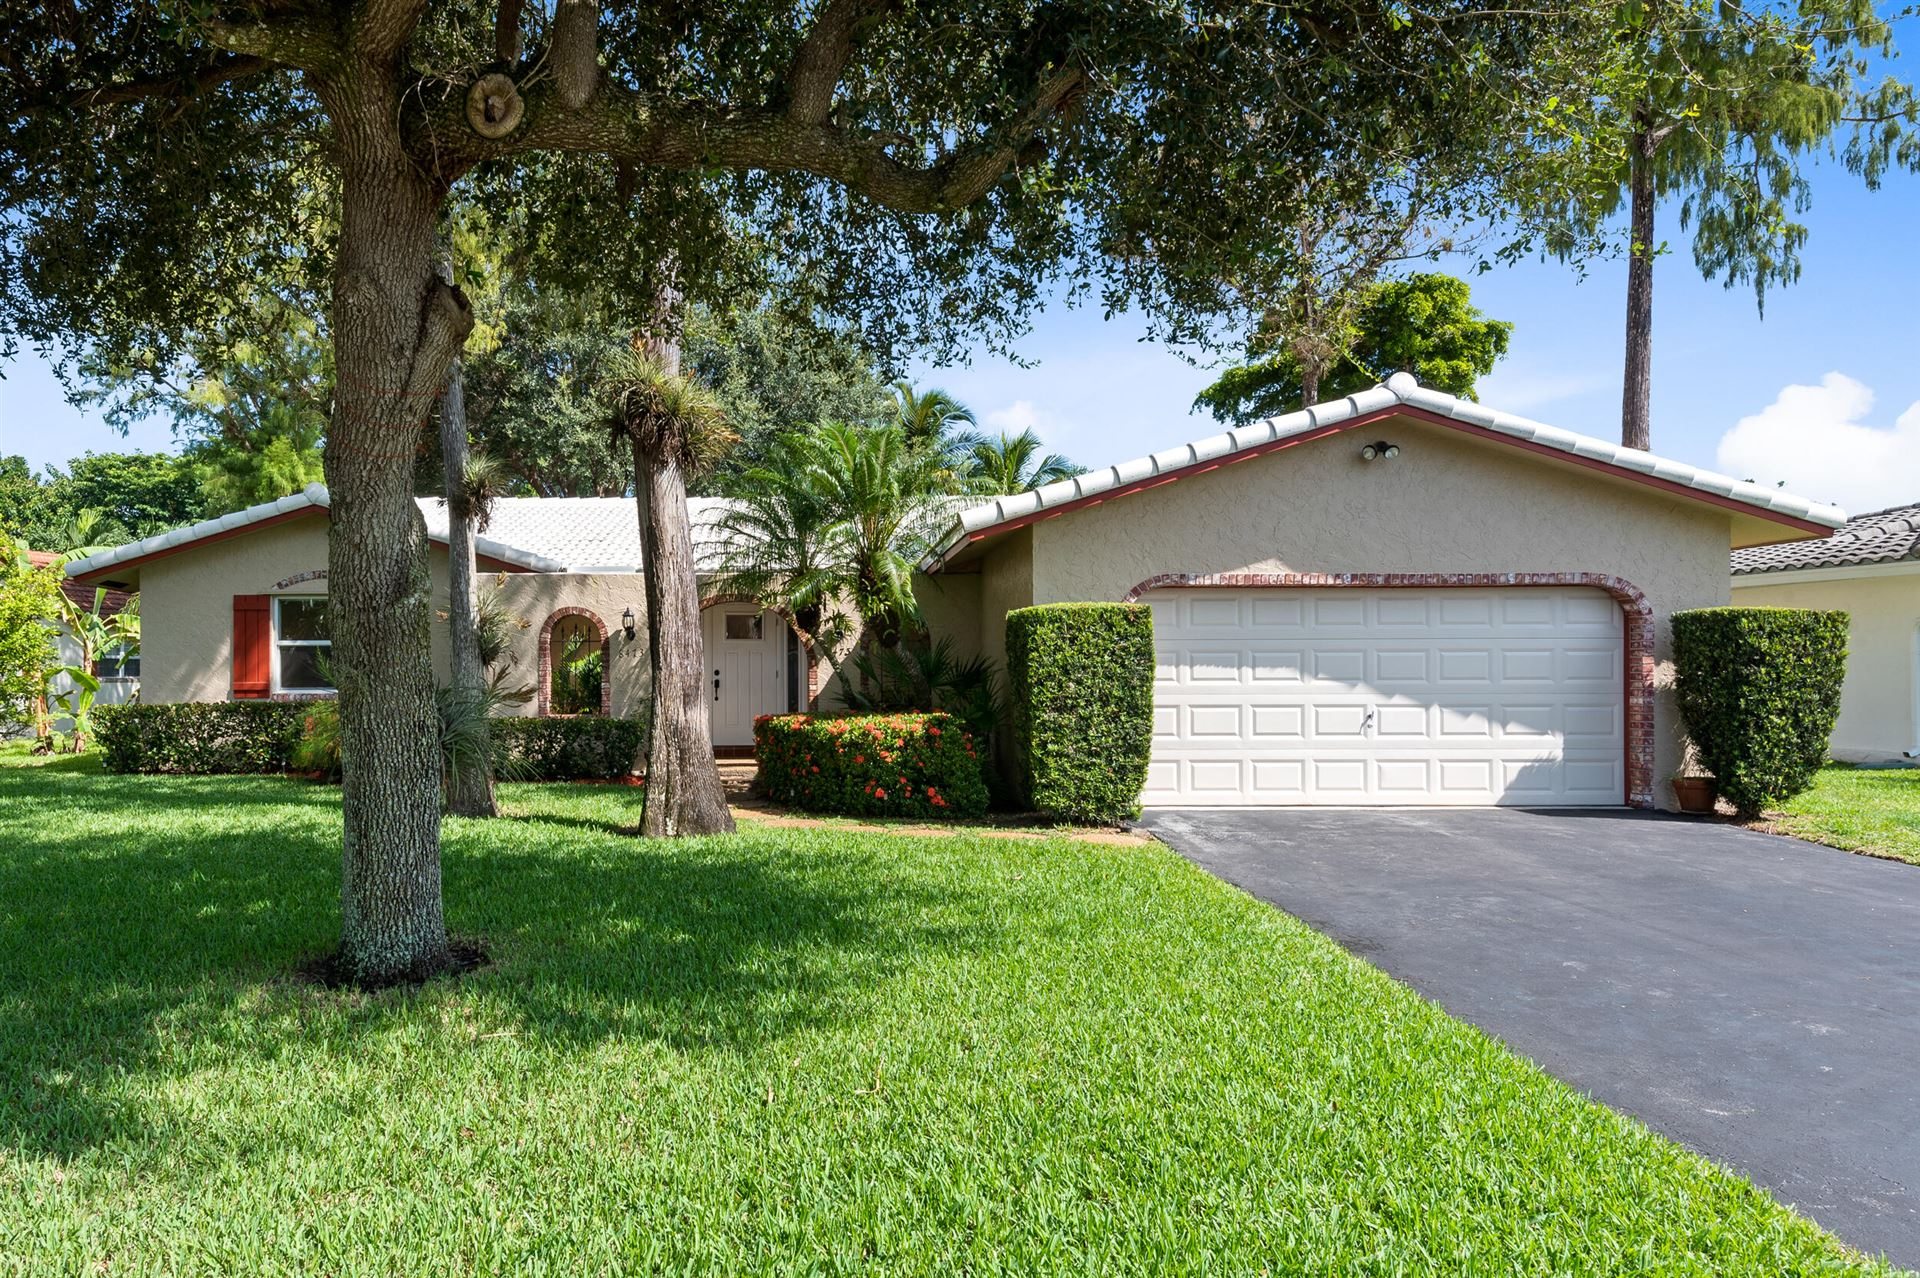 8473 NW 14 Court, Coral Springs, FL 33071 - MLS#: RX-10743970